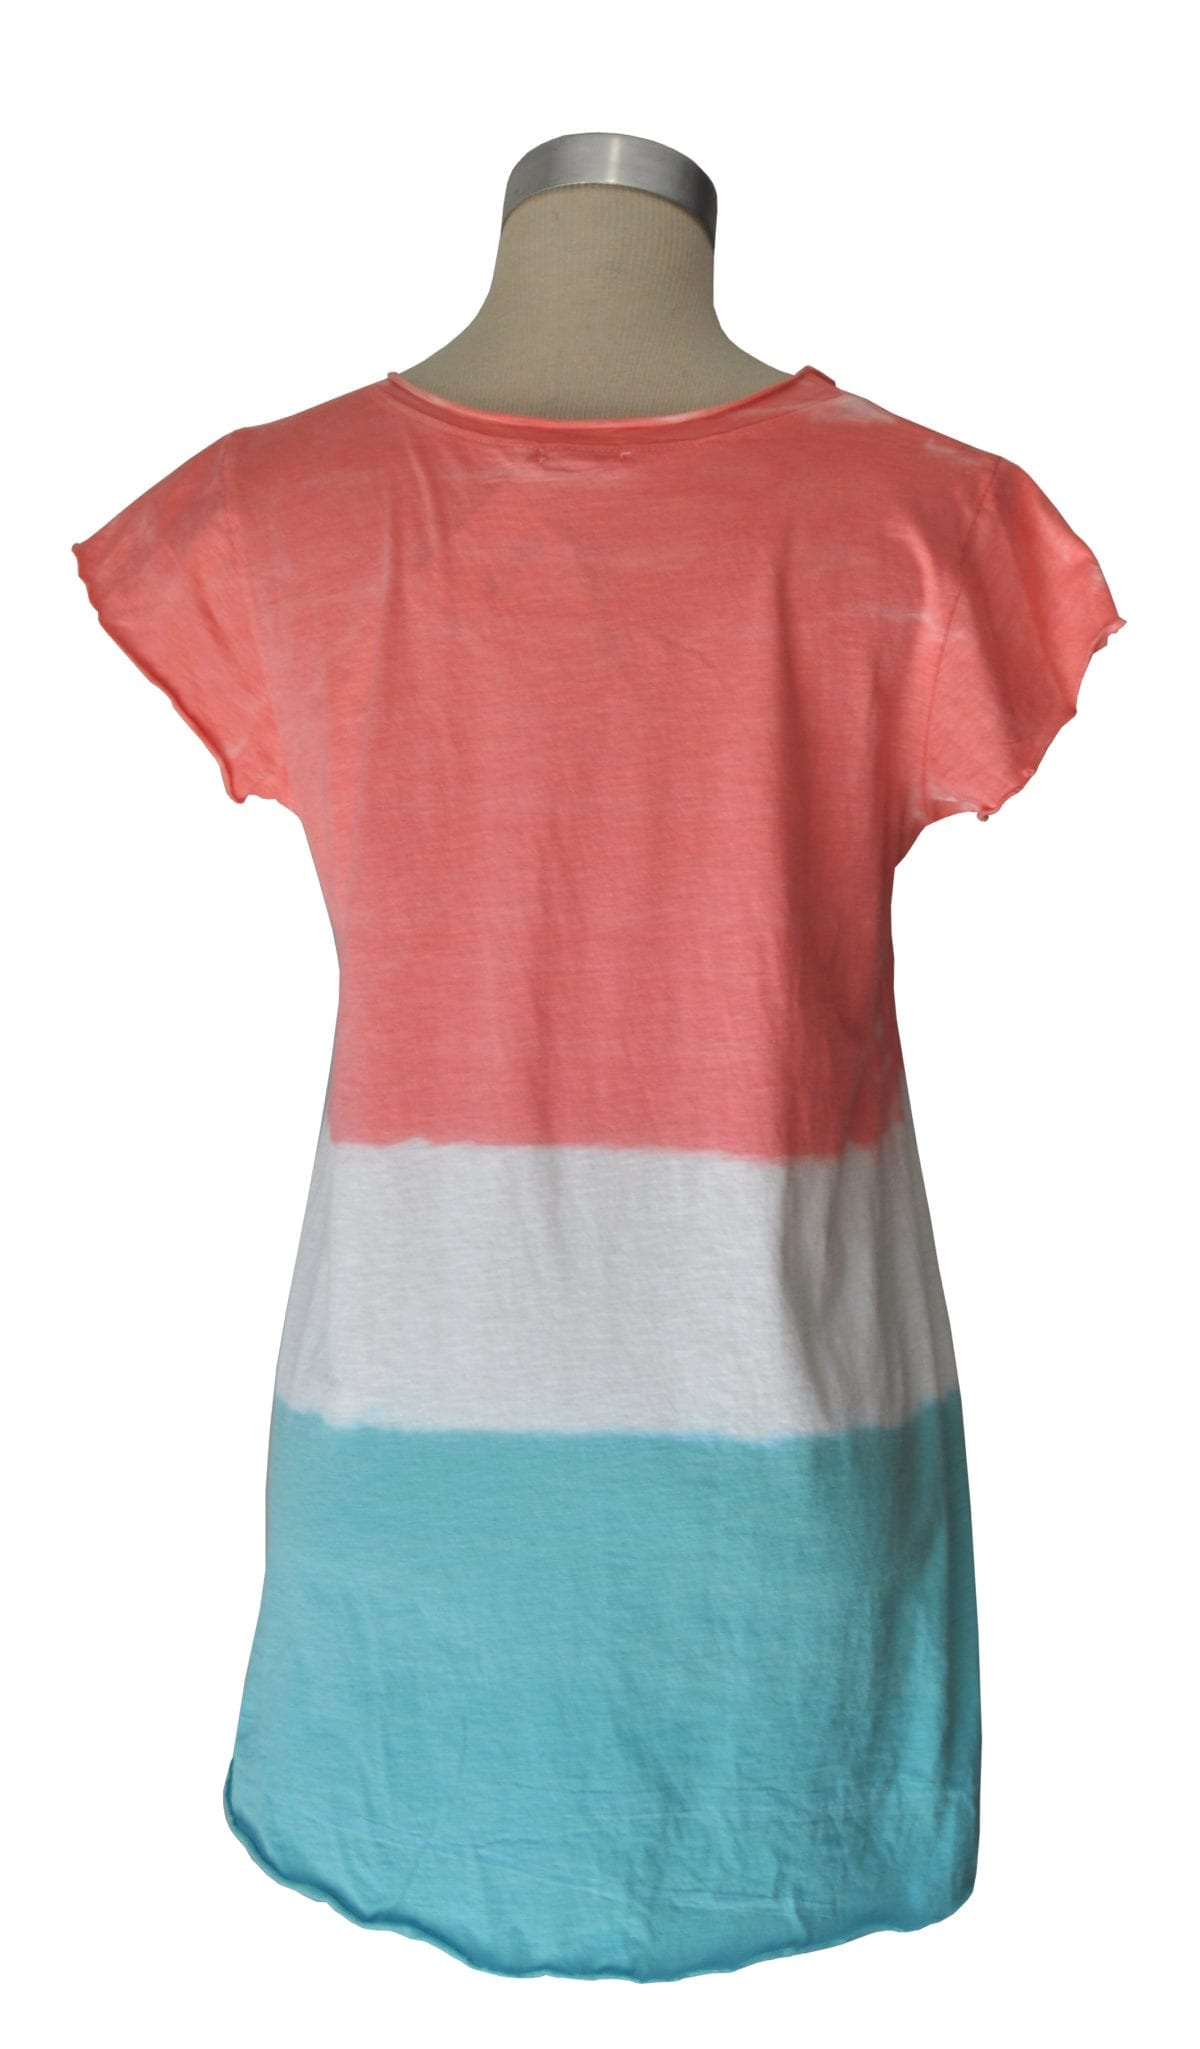 3-Tone striped t-shirt